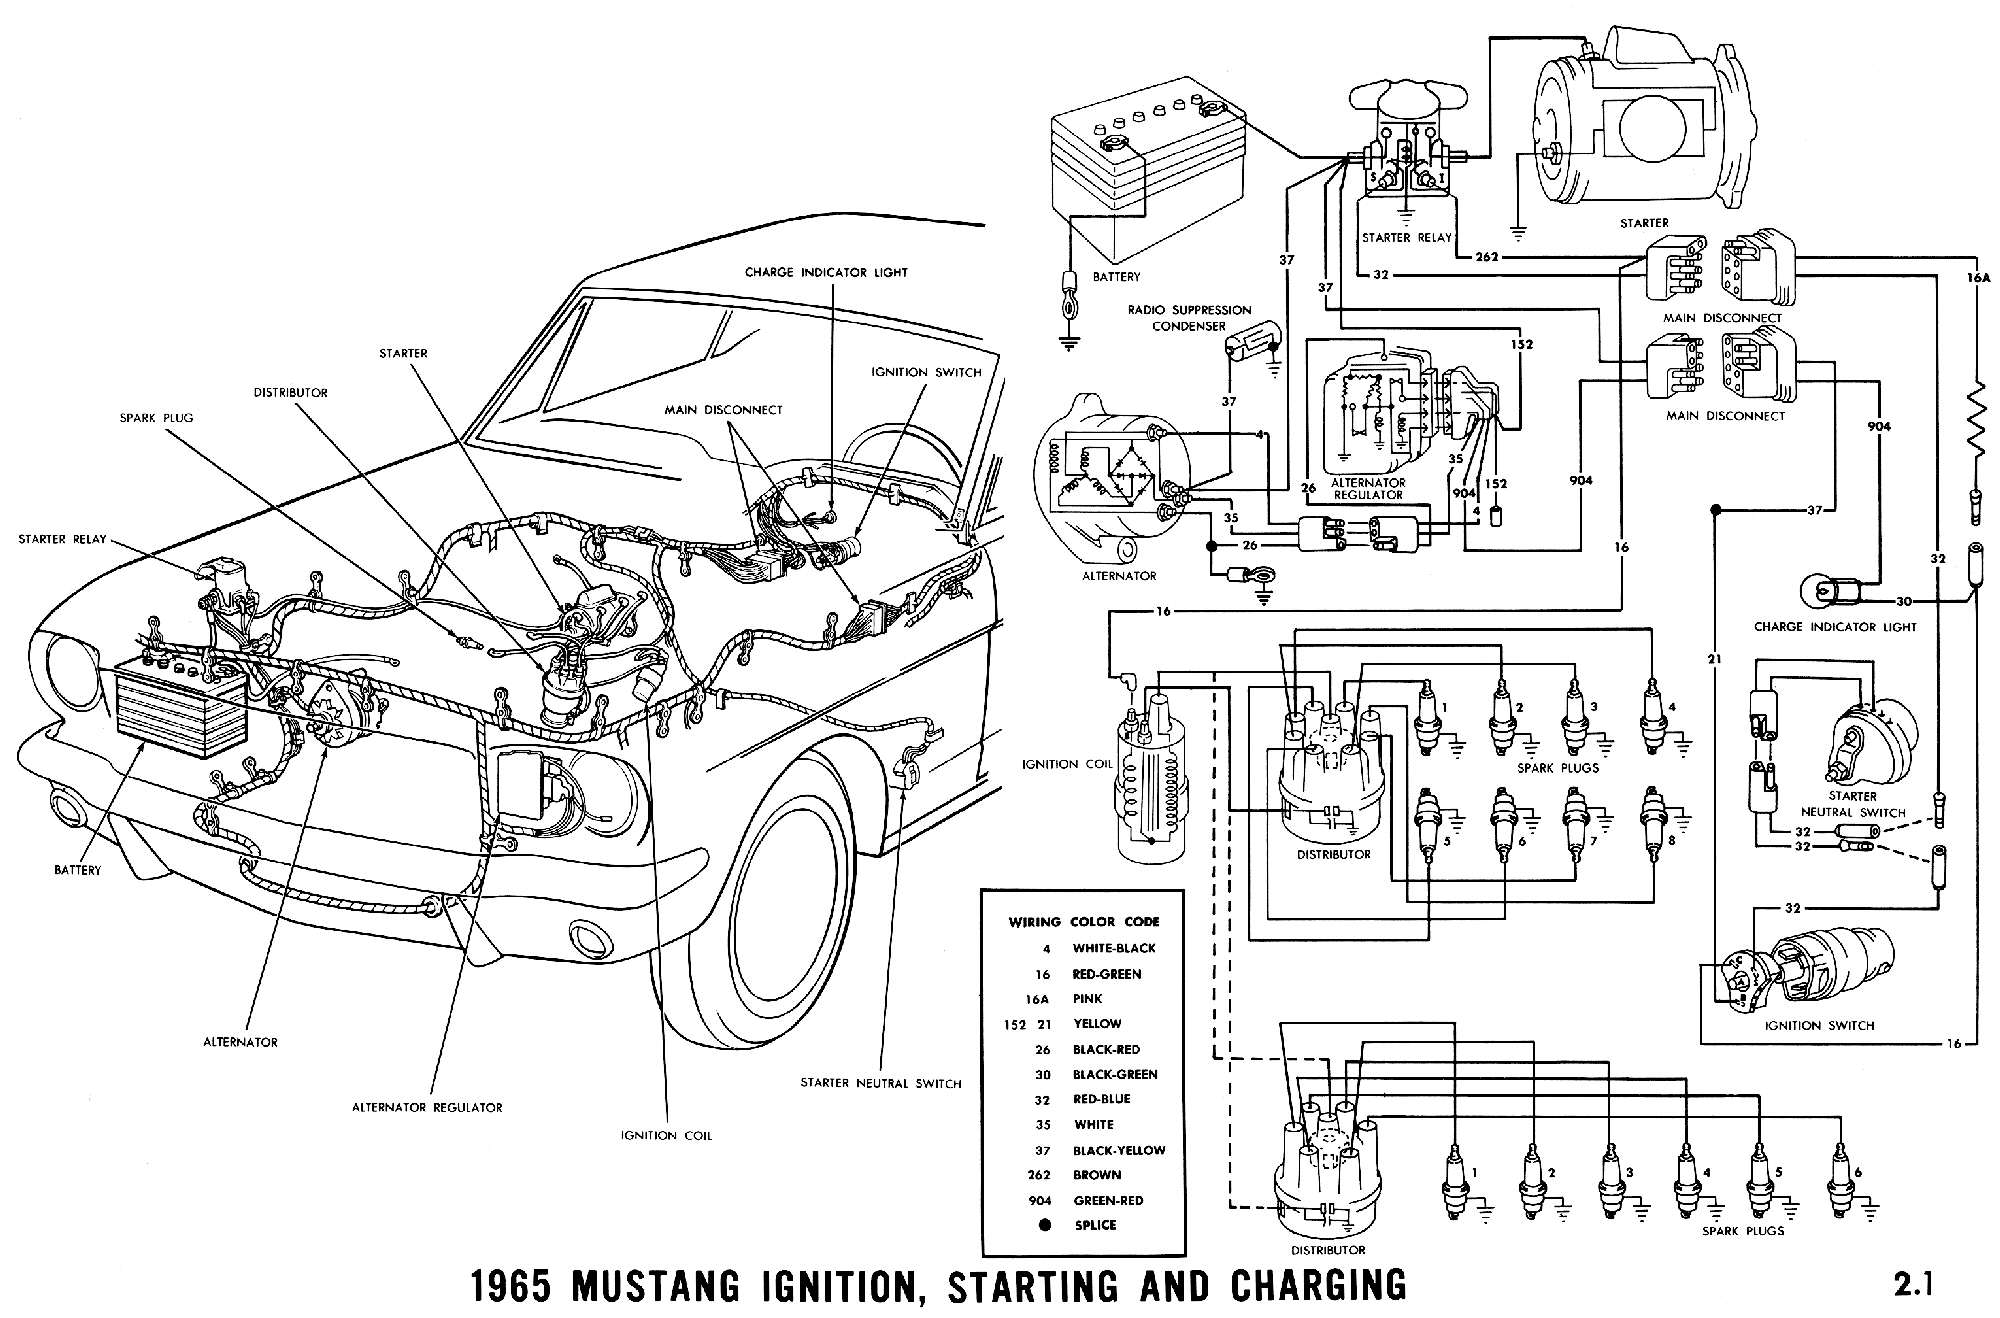 1965c 1965 mustang wiring diagrams average joe restoration 1967 Mustang Wiring Schematic at alyssarenee.co